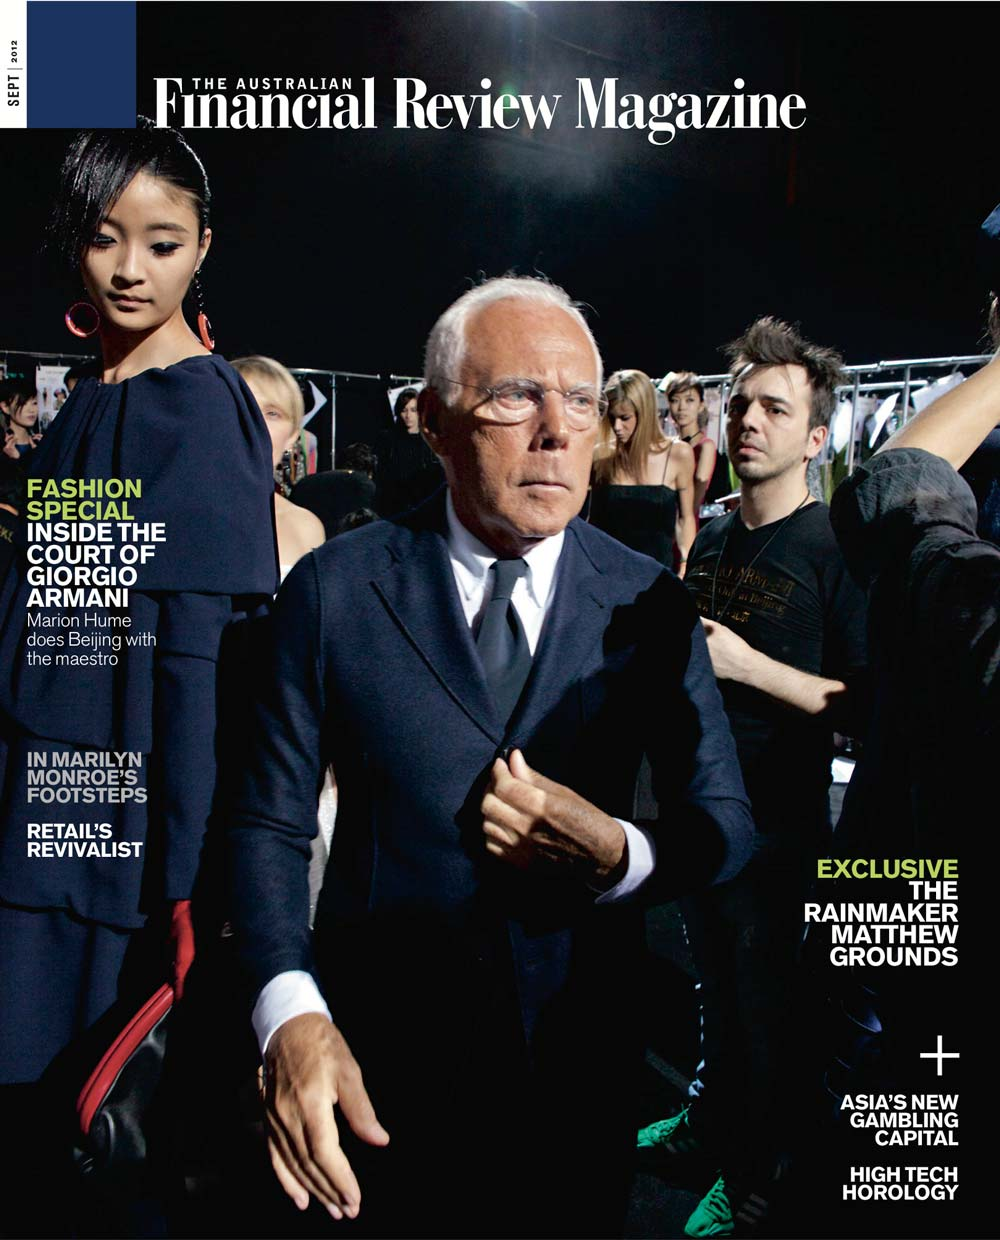 TheAustralianFinancialReview_Armani_0812-cover